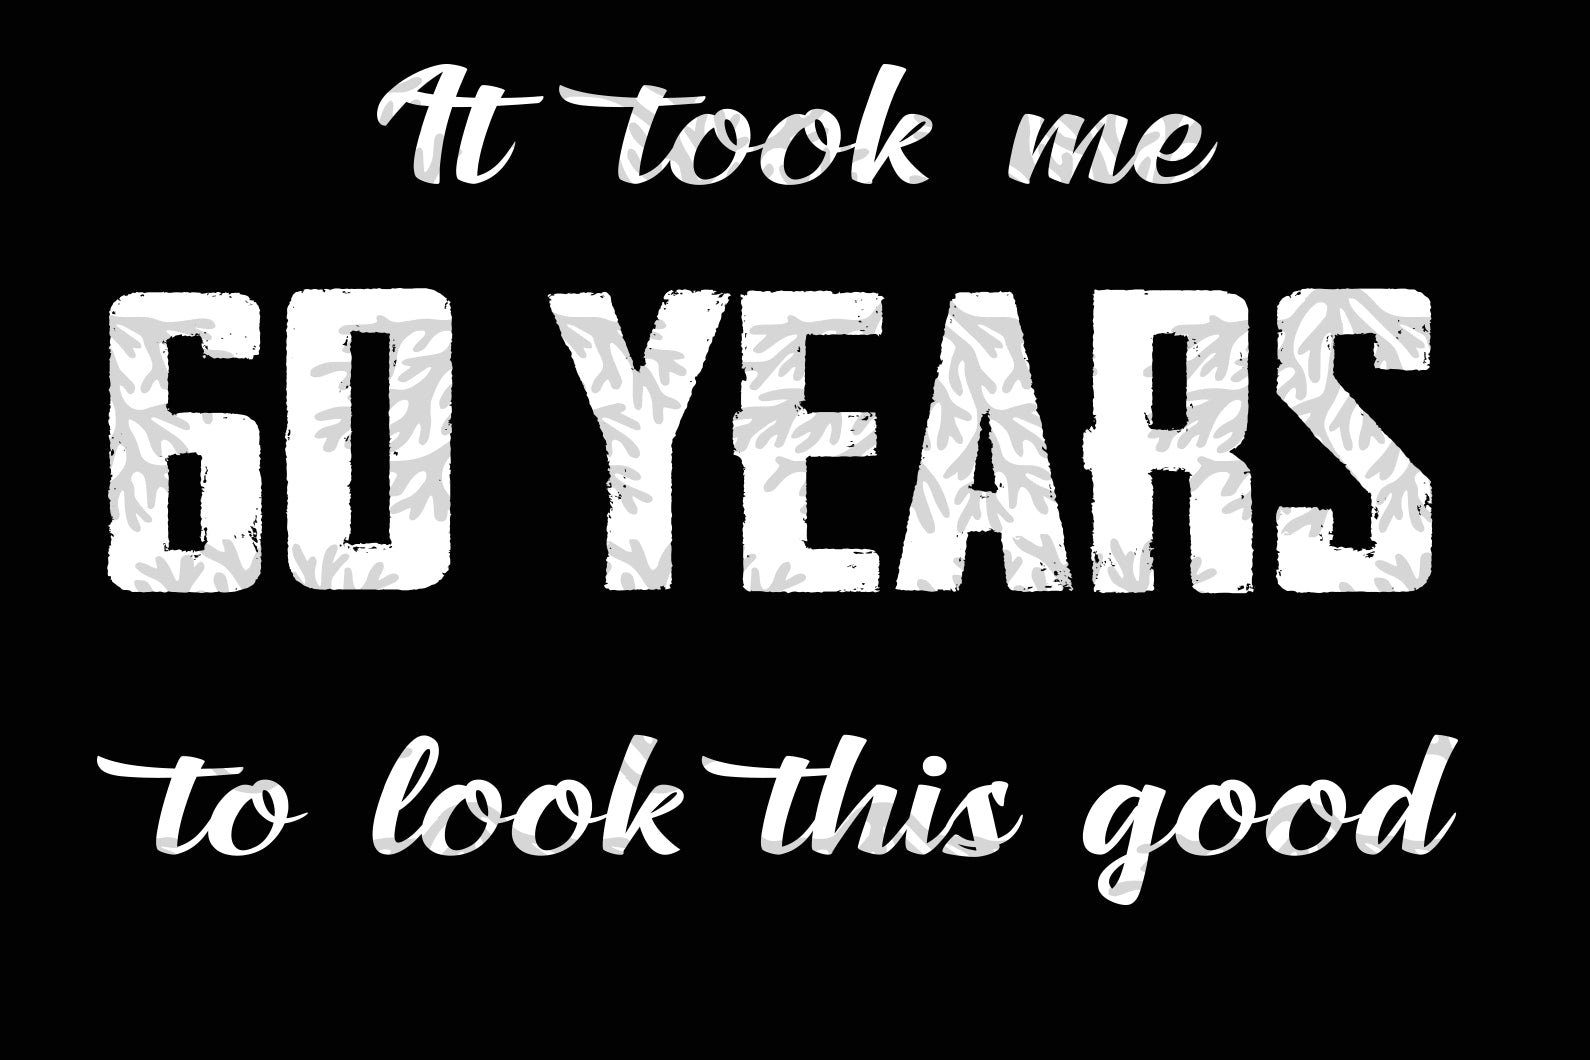 It took me 60 years to look this good, born in 1959, 1959 svg, 60th birthday gift, 60th birthday party, birthday anniversary, birthday gift, digital file,